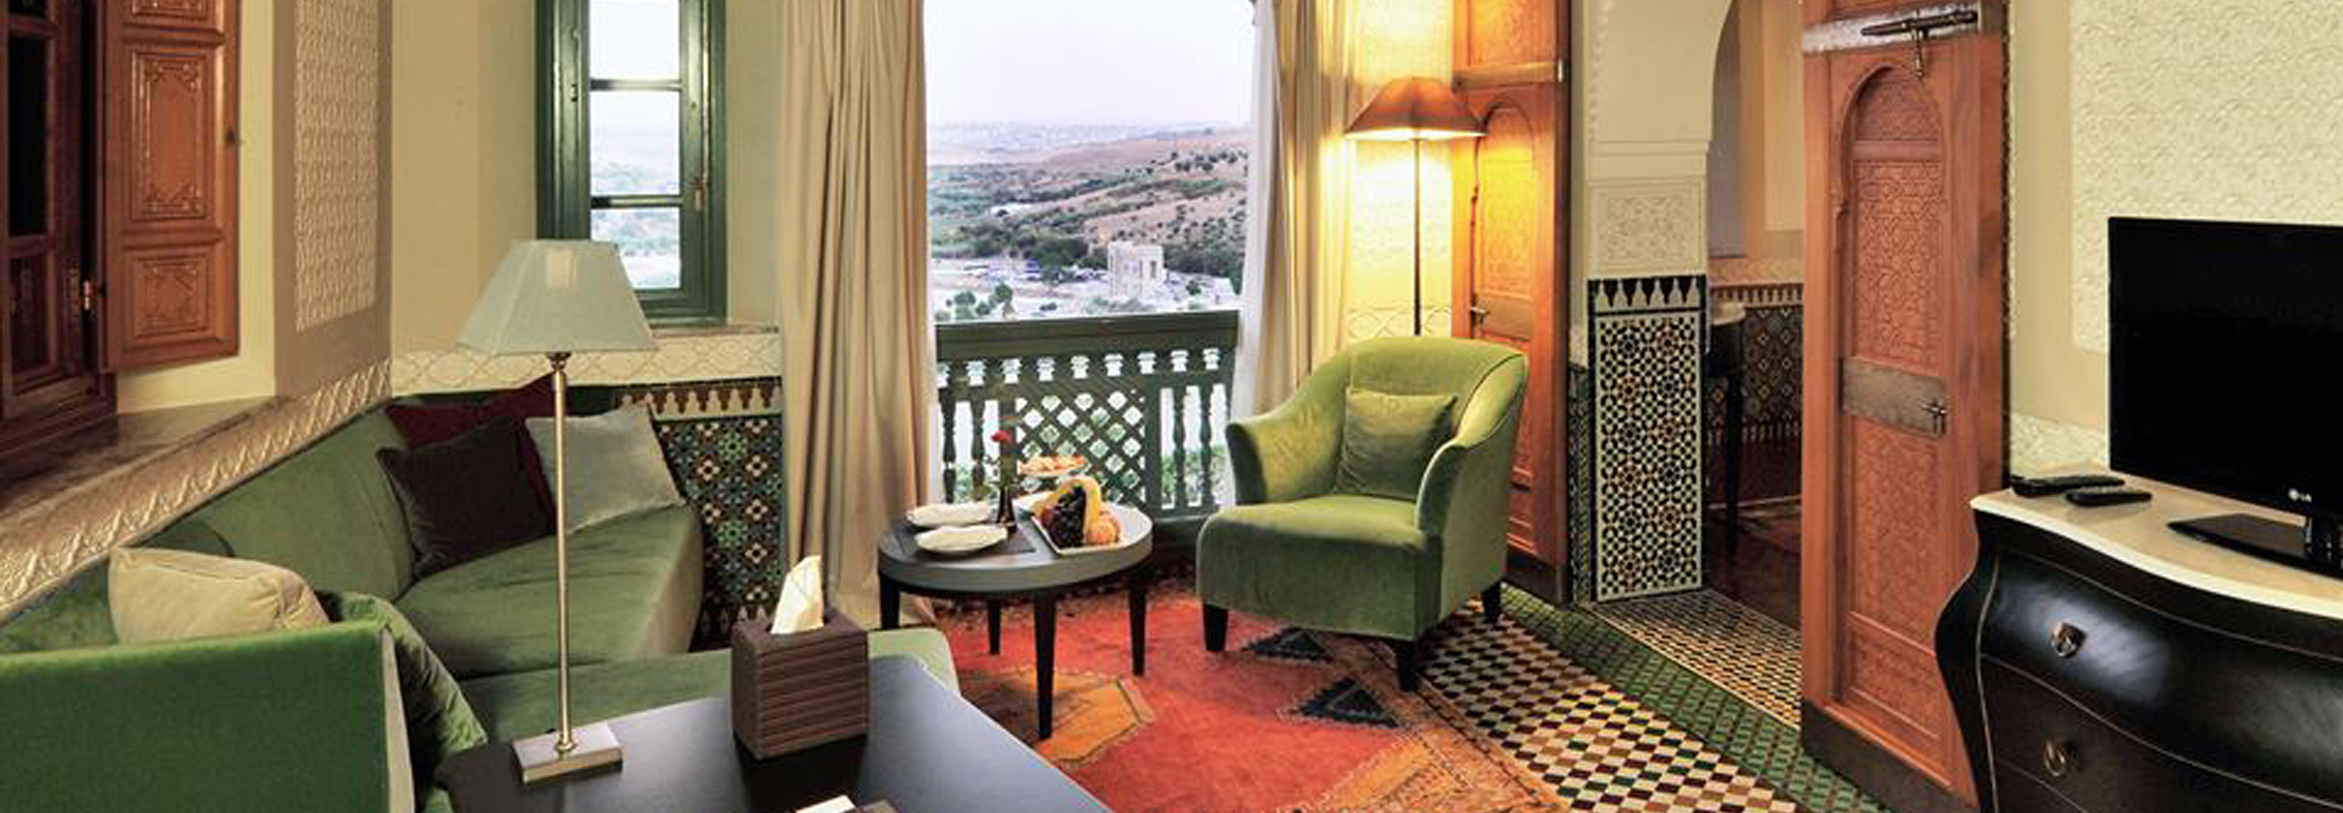 Palais Faraj Suites & Spa - Luxury Fez Hotel - Morocco Travel - Ker & Downey